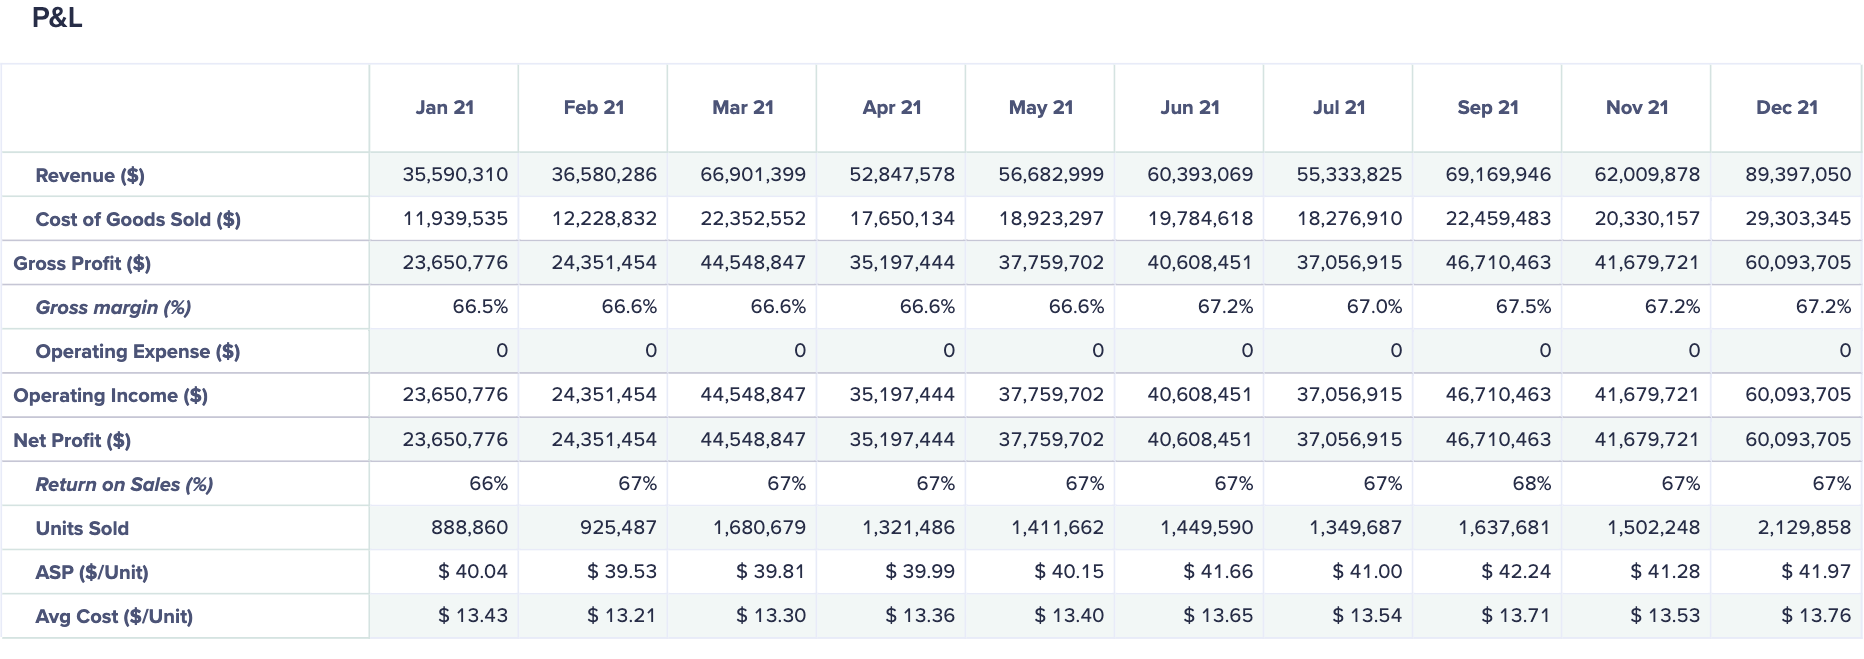 The presentation table shows months as columns and categories of the profit and loss report as rows. Formatted values display in the grid.